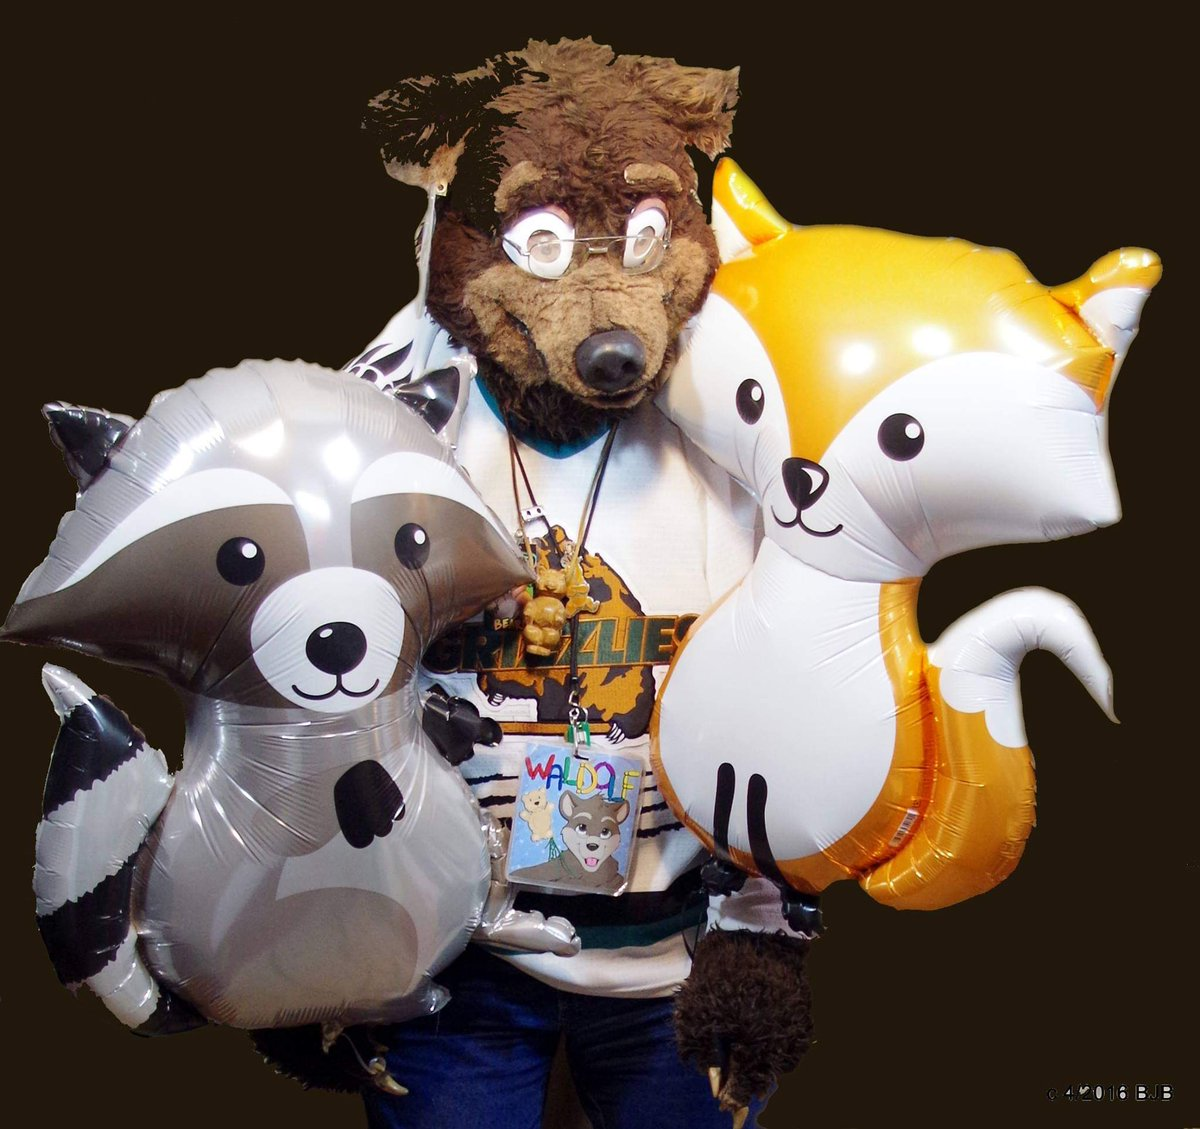 "#FursuitFriday #Waldolf with some #helium filled #Balloon ""friends""   #fursuit #fursuiter #fursuiting #bear #costume<br>http://pic.twitter.com/fgrN6hiCeK"